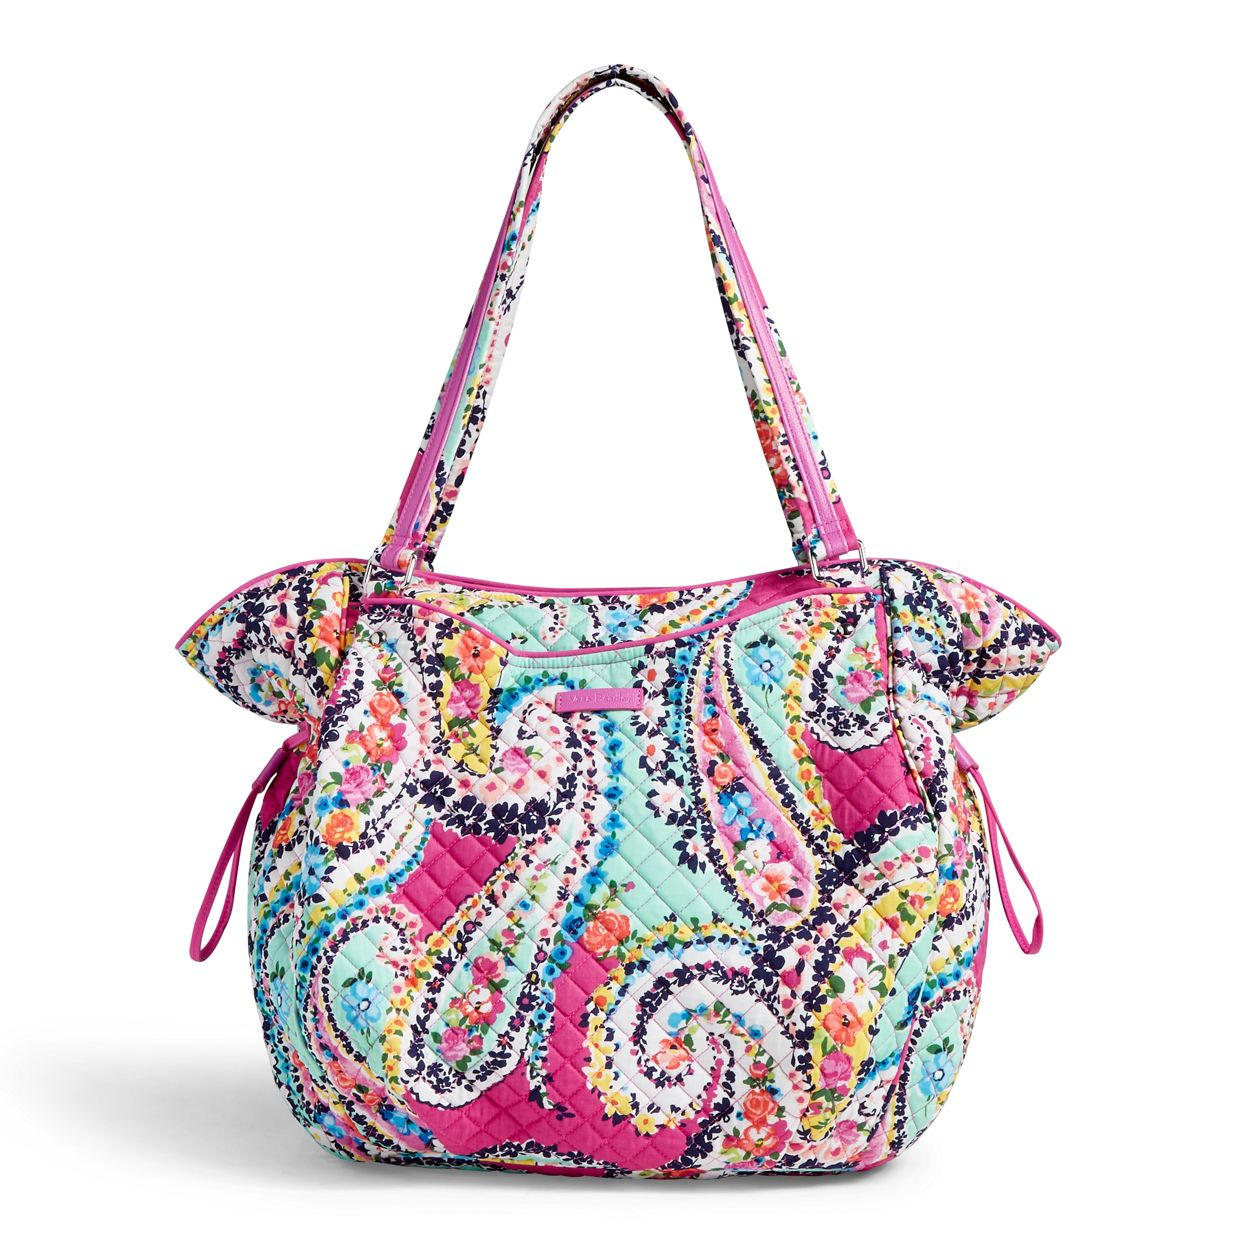 Image of Iconic Glenna Tote in Wildflower Paisley ... 2881d28ec4b54